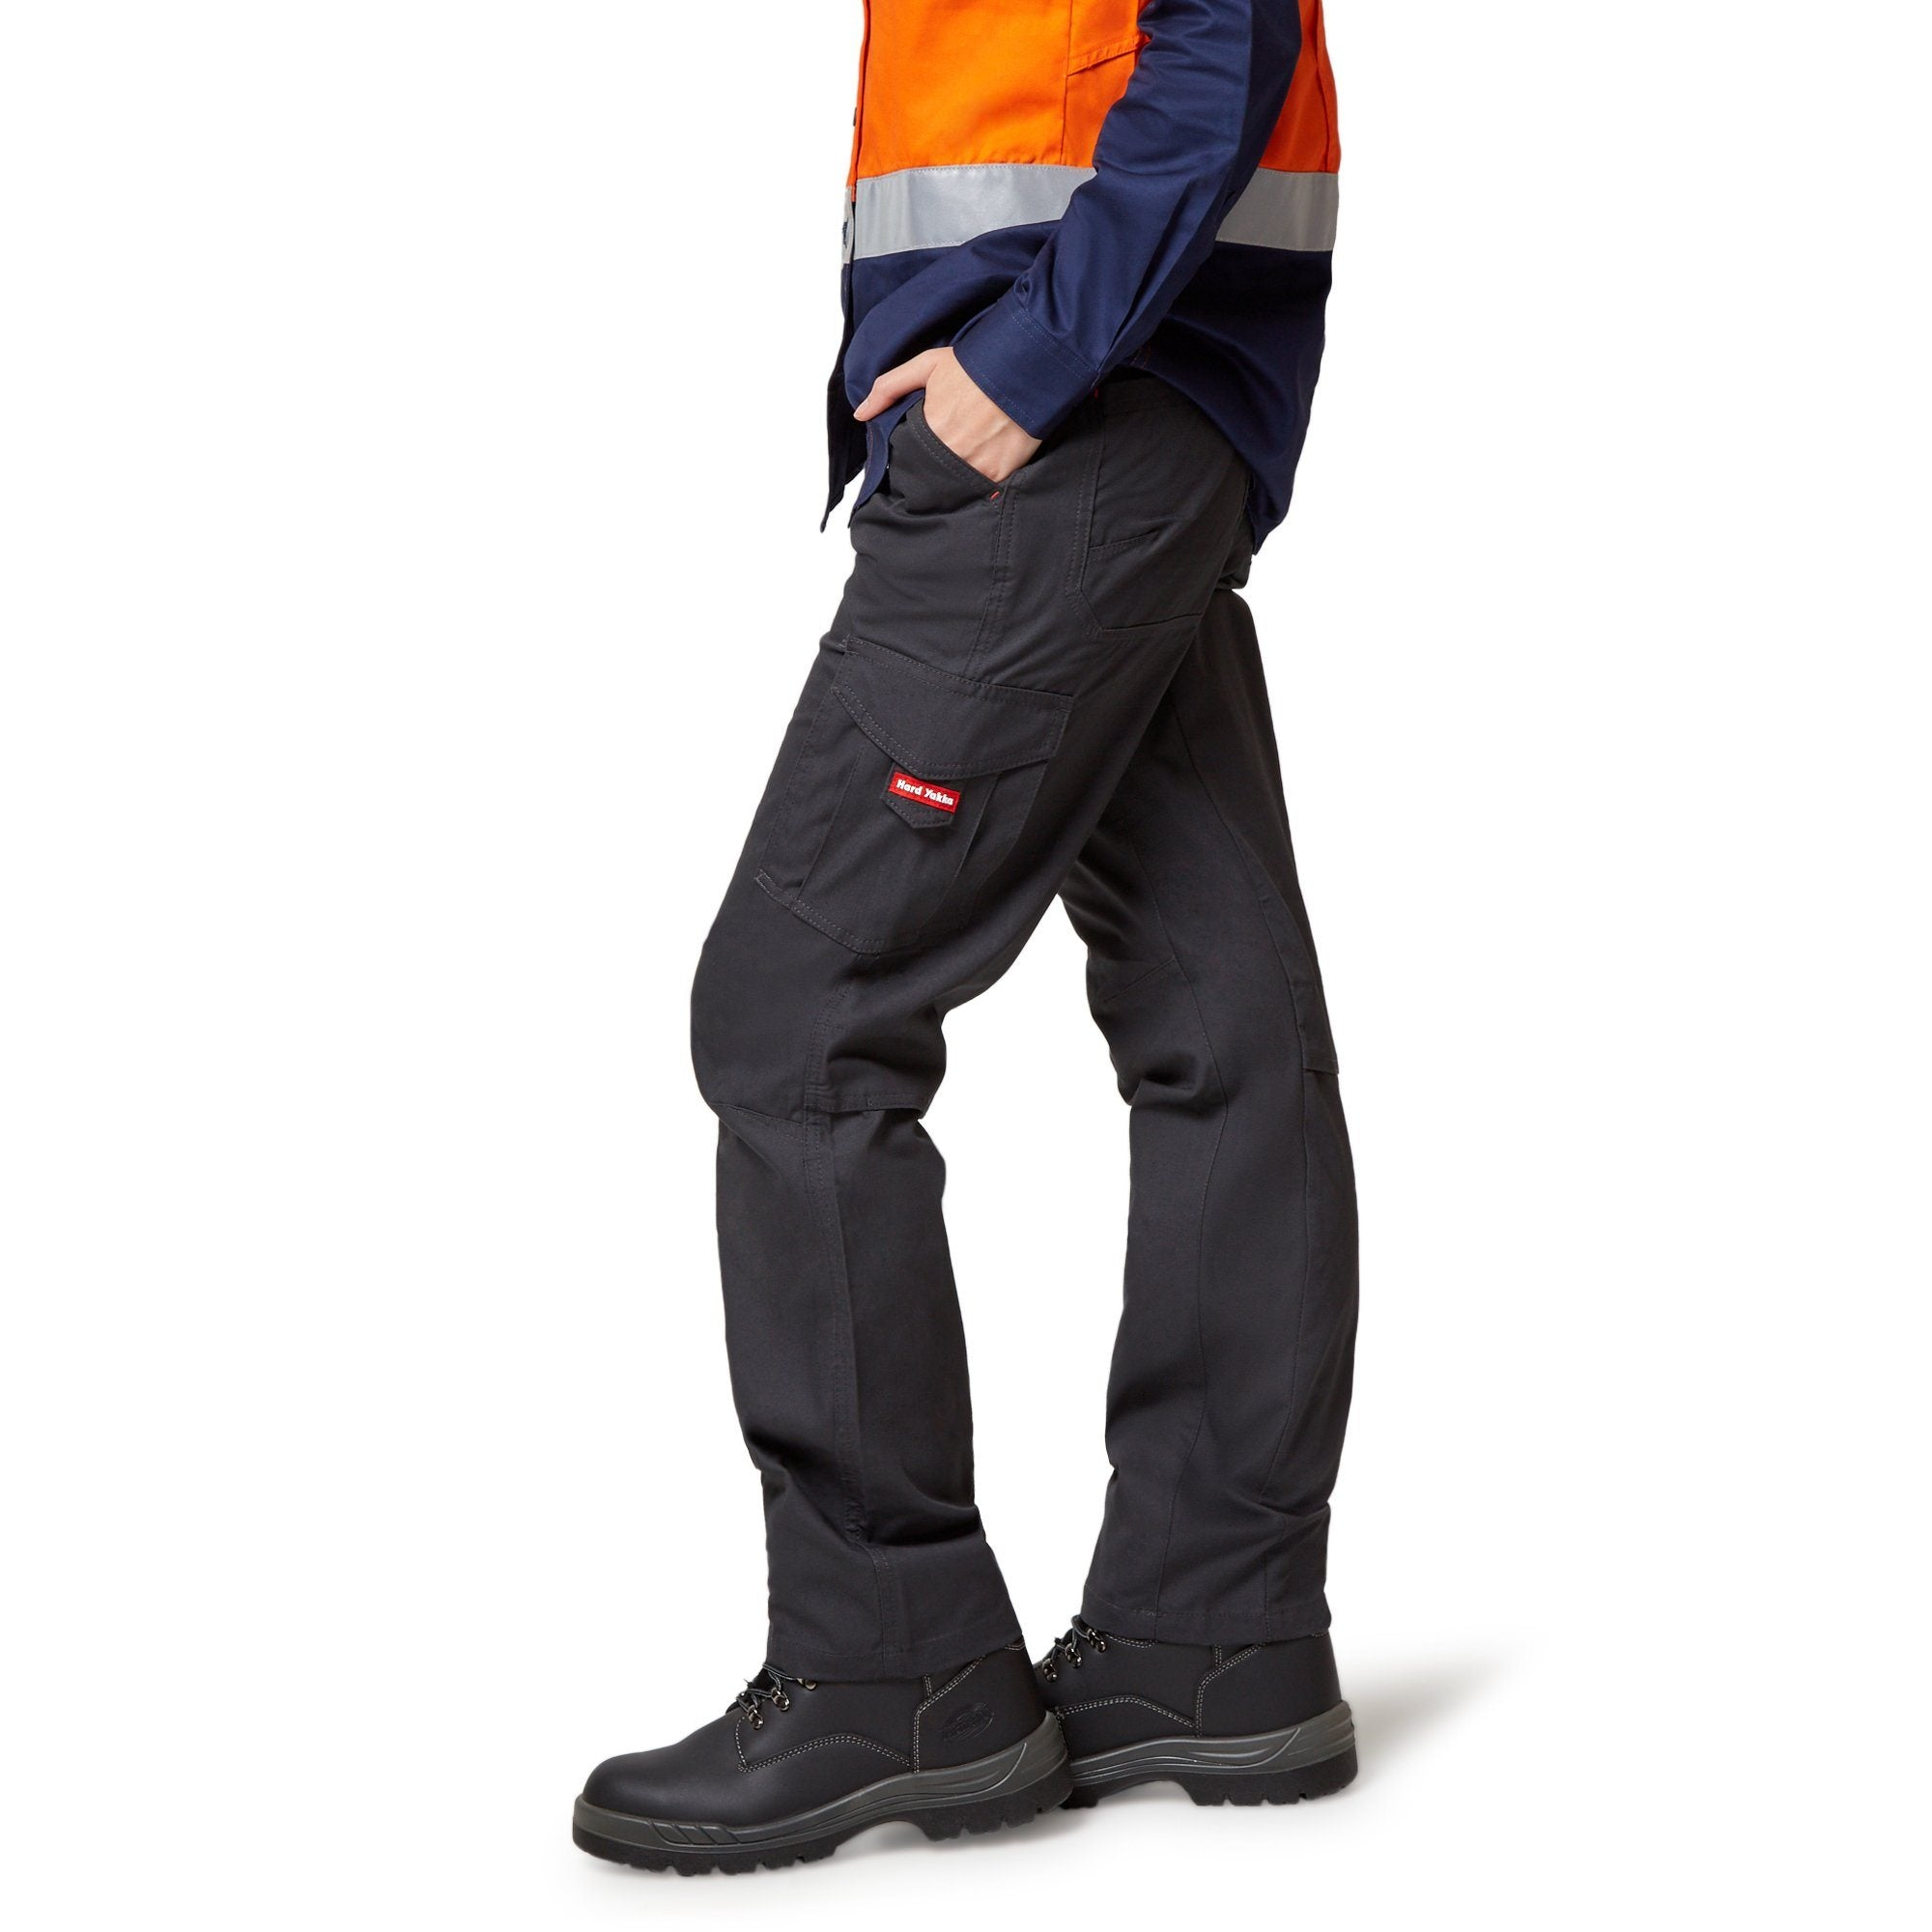 Hard Yakka Womens Vented Cargo Pants - Charcoal Workwear Hard Yakka